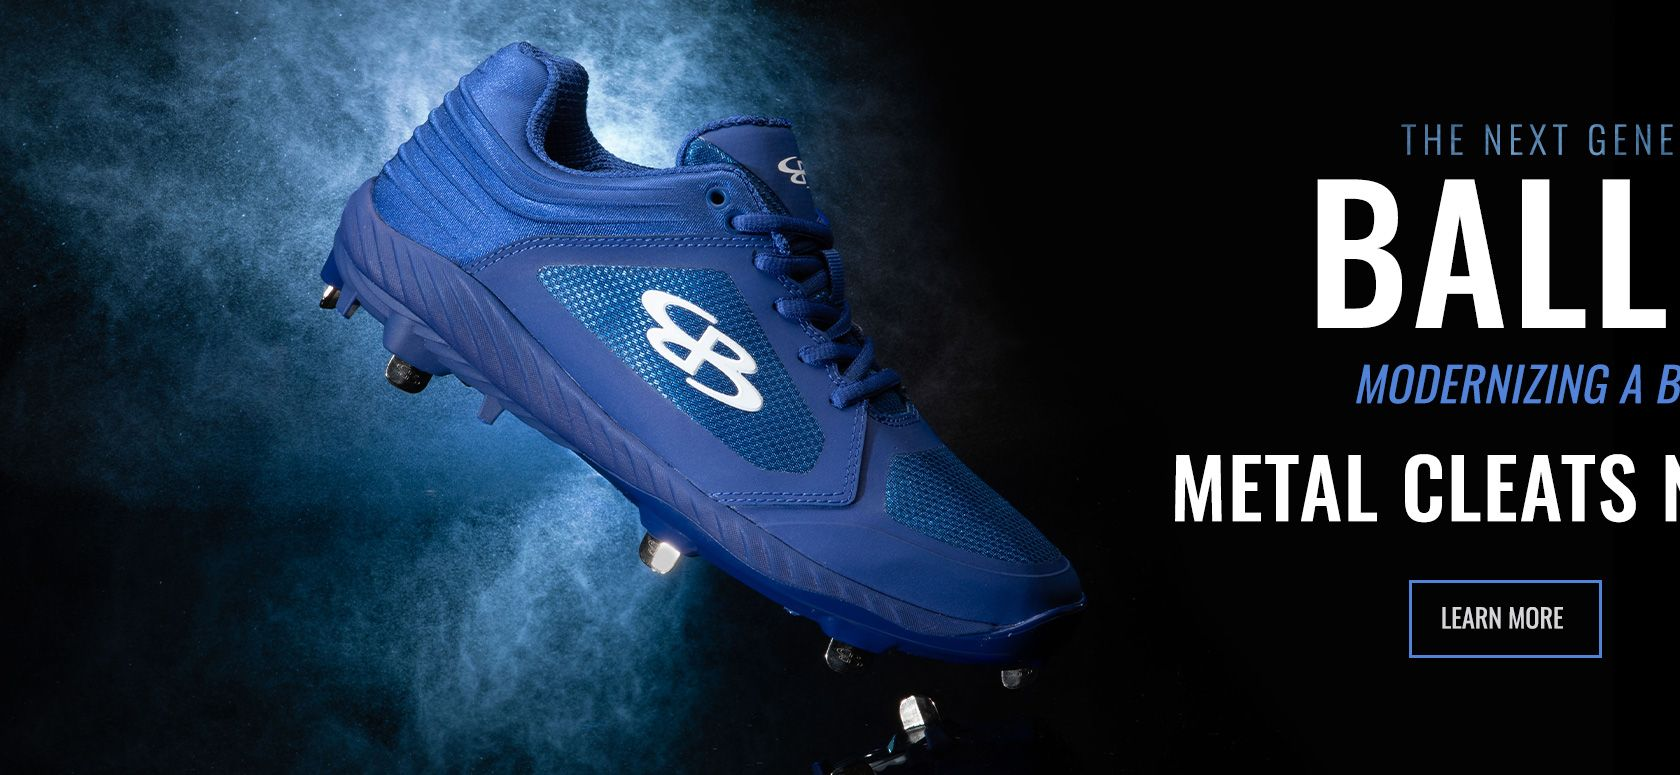 Ballistic Metal Cleats Now Availabe - Learn More